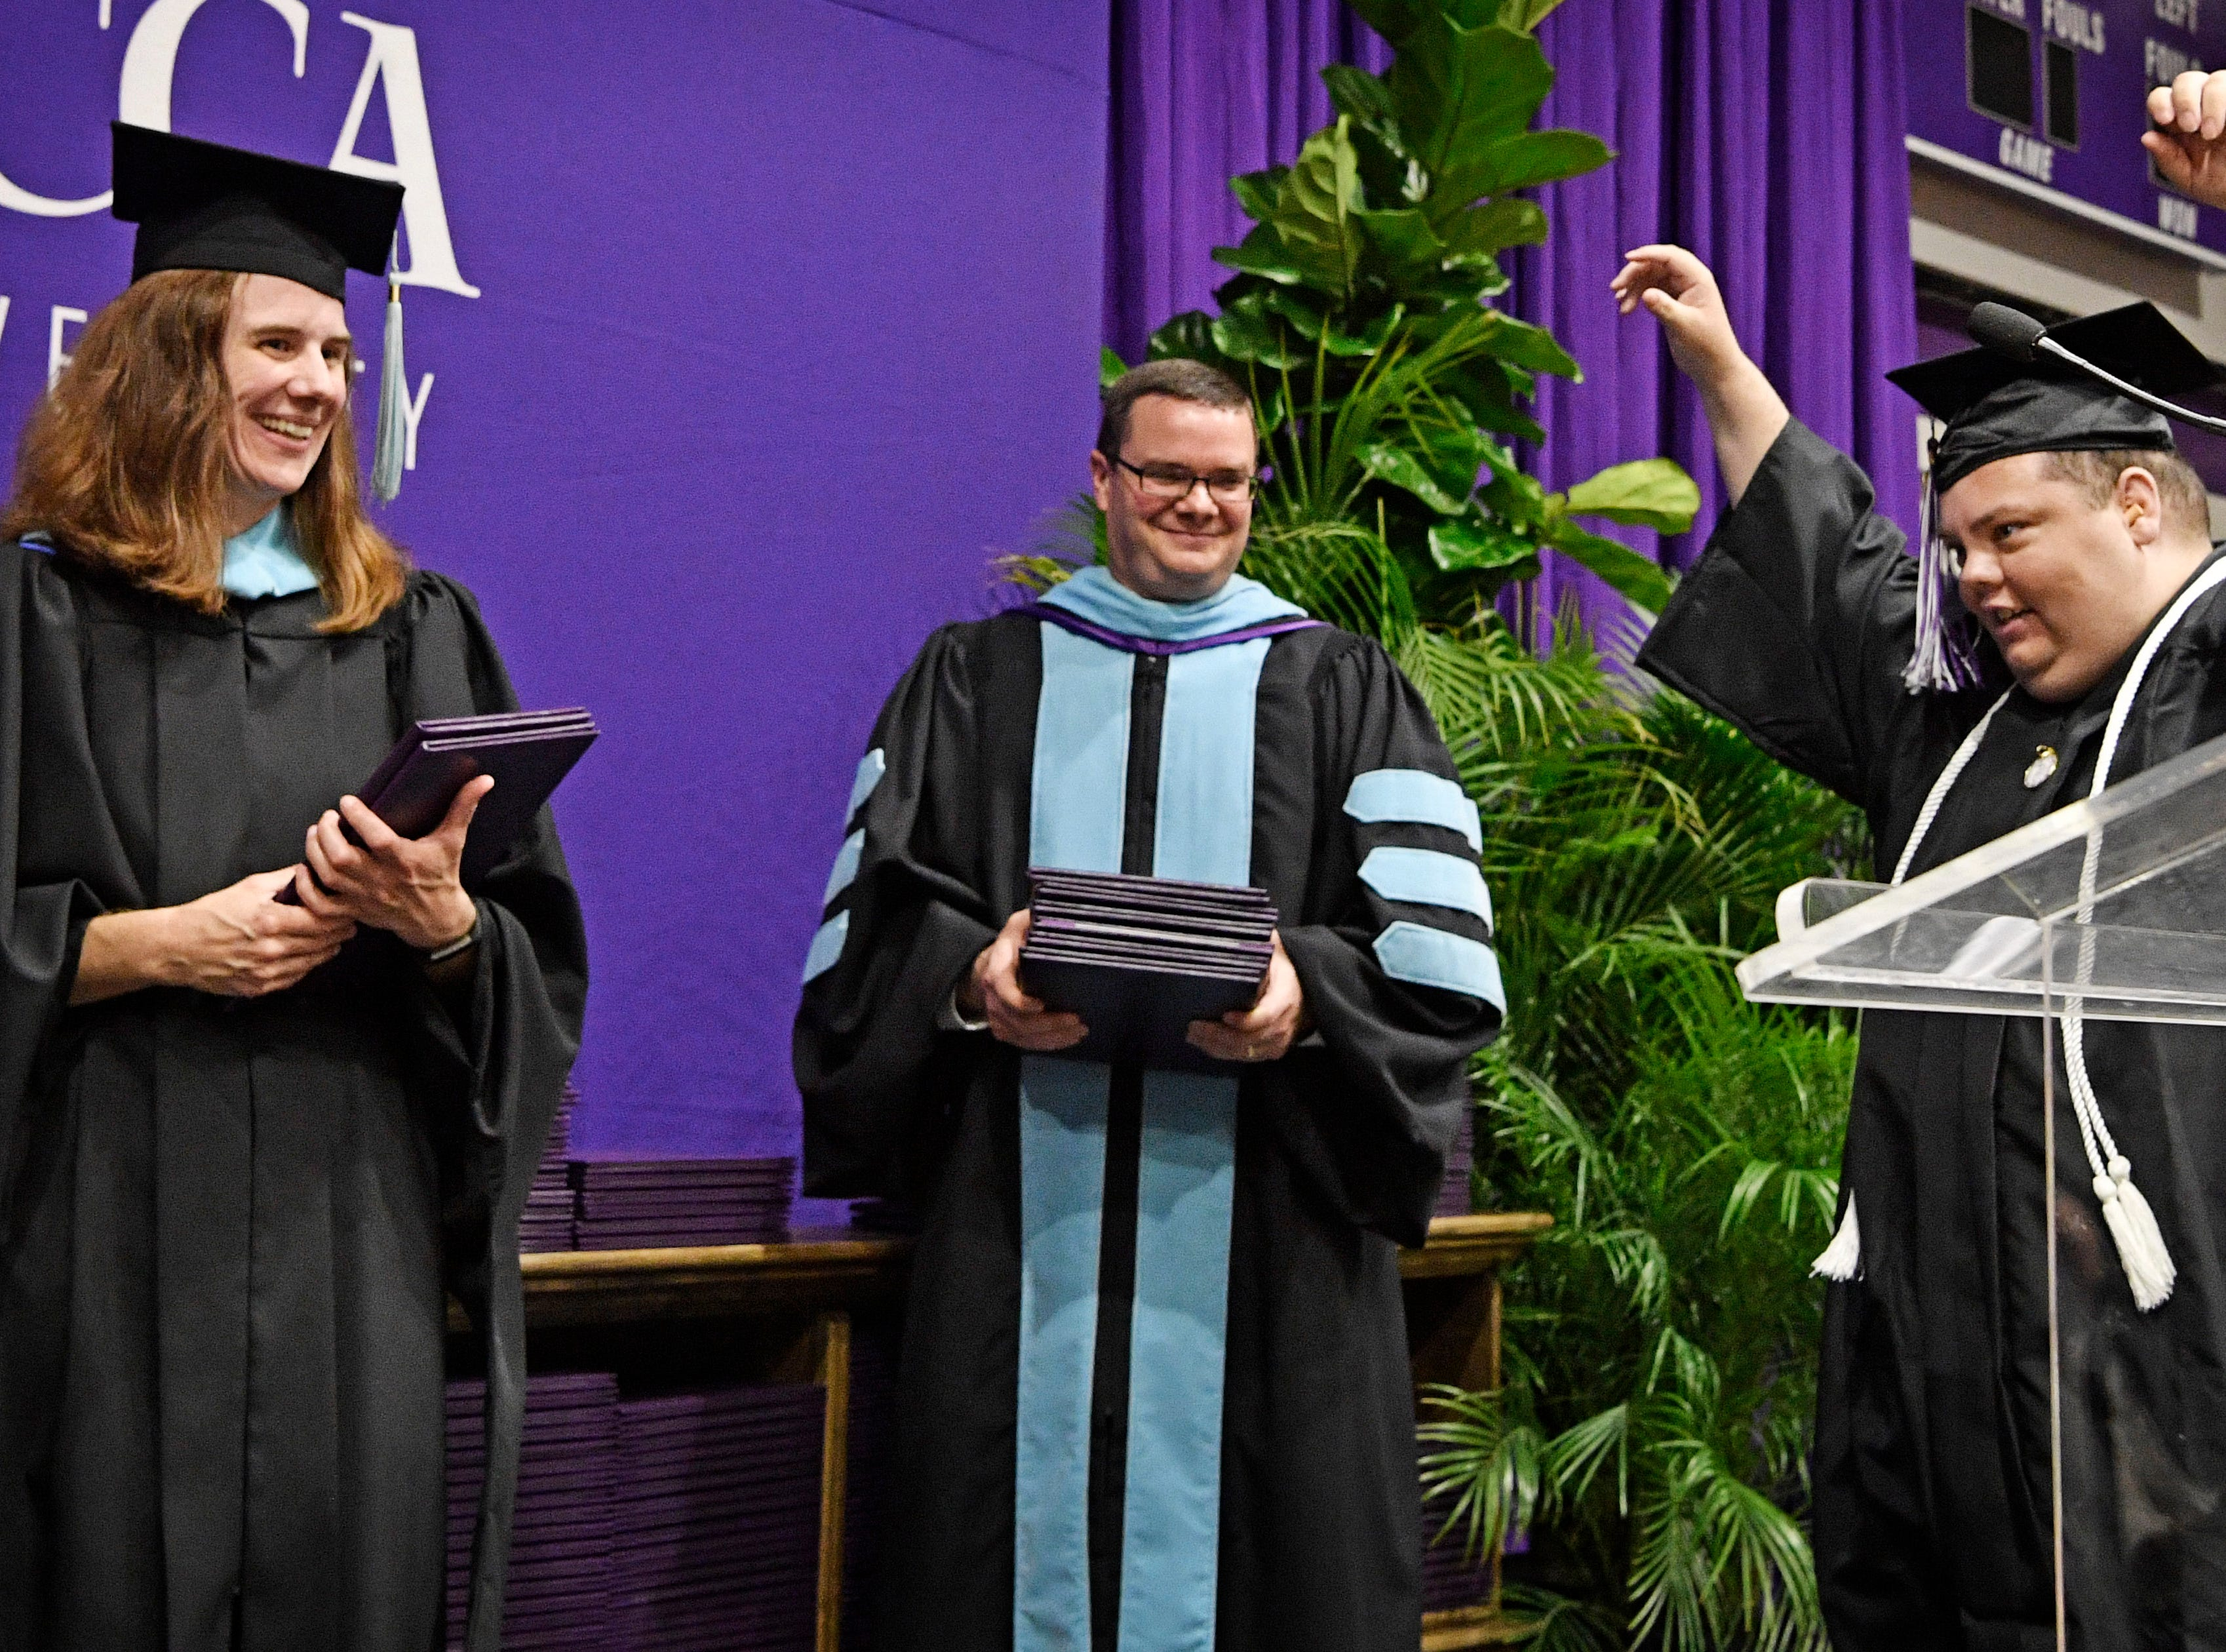 Brian Schnelle raises his arms in celebration as he graduated from Trevecca on Saturday after 12 years as a student. He is on the autism spectrum & has pursued his degree taking about 6 credits a semester Saturday, May 4, 2019, in Nashville, Tenn.